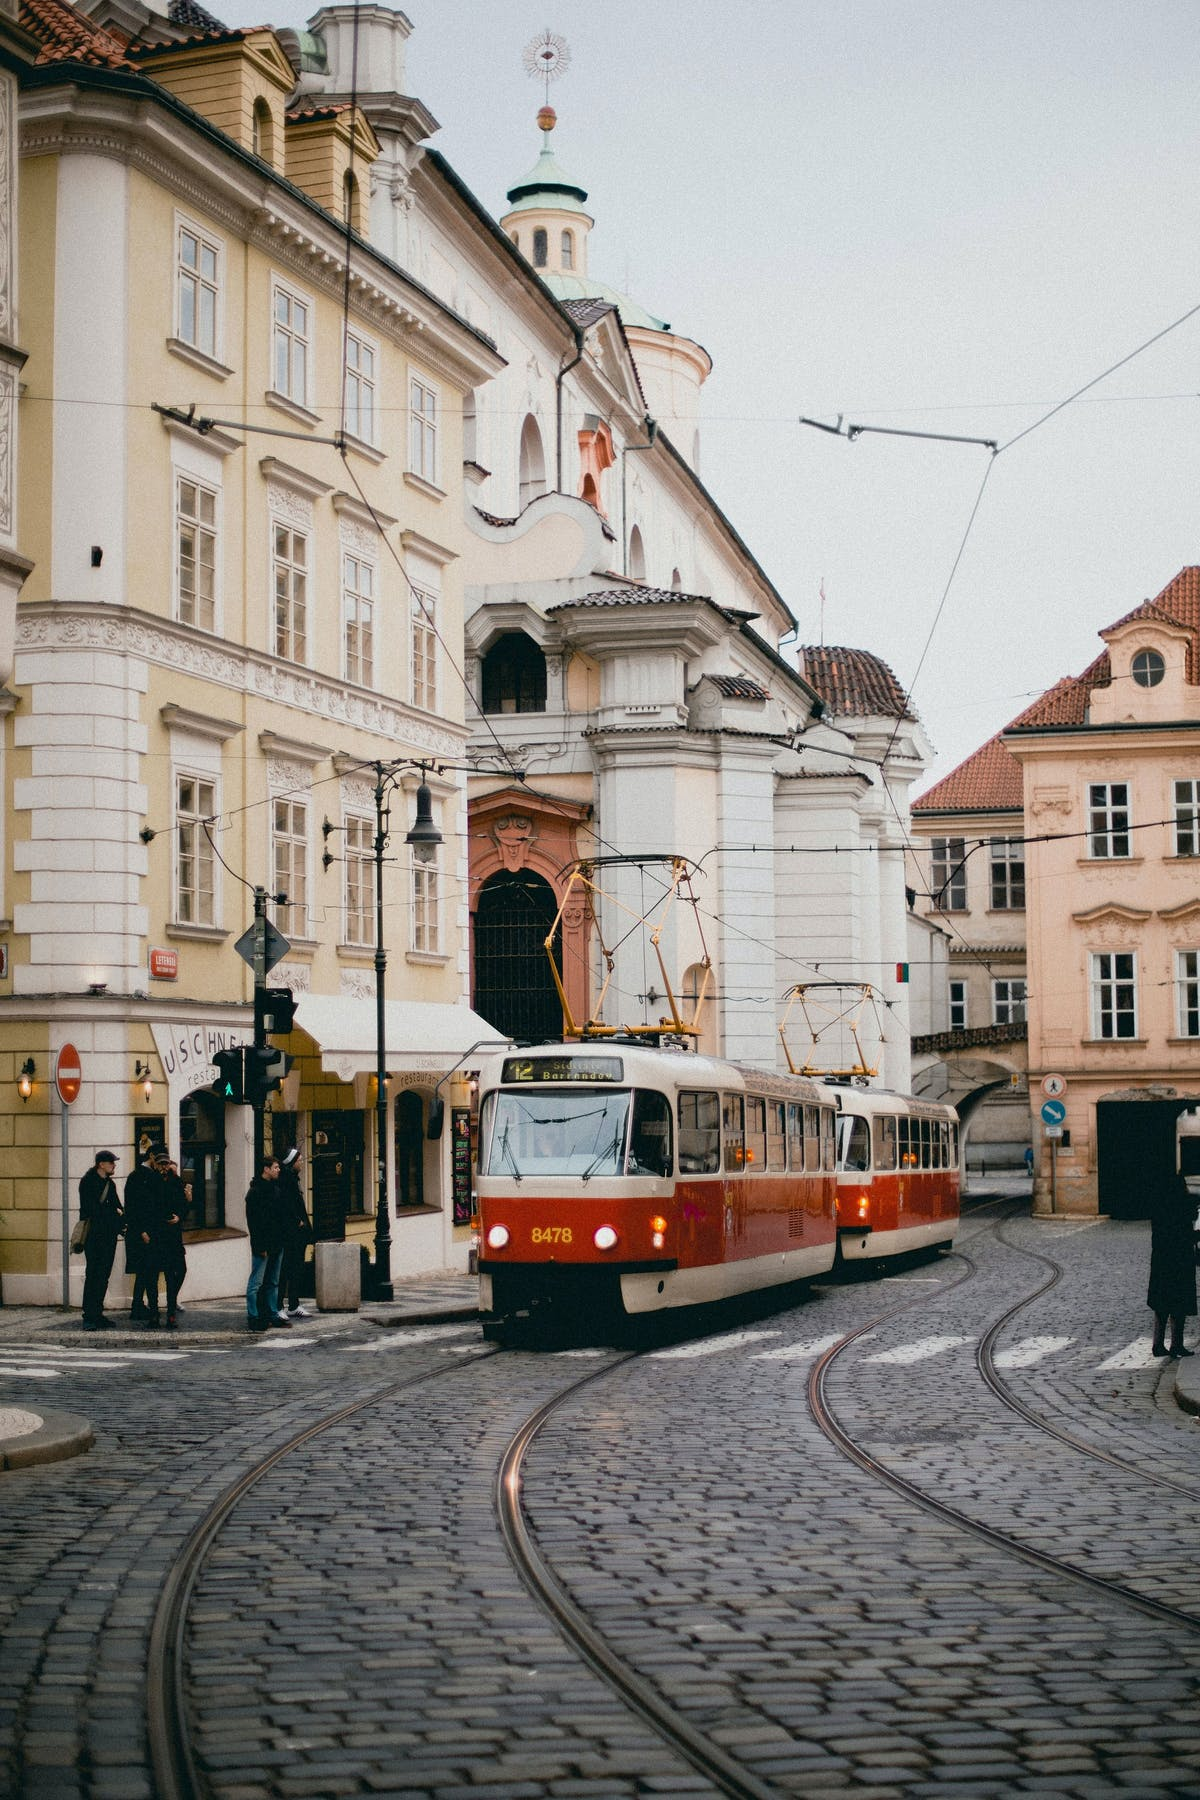 A tramway in the historic city centre